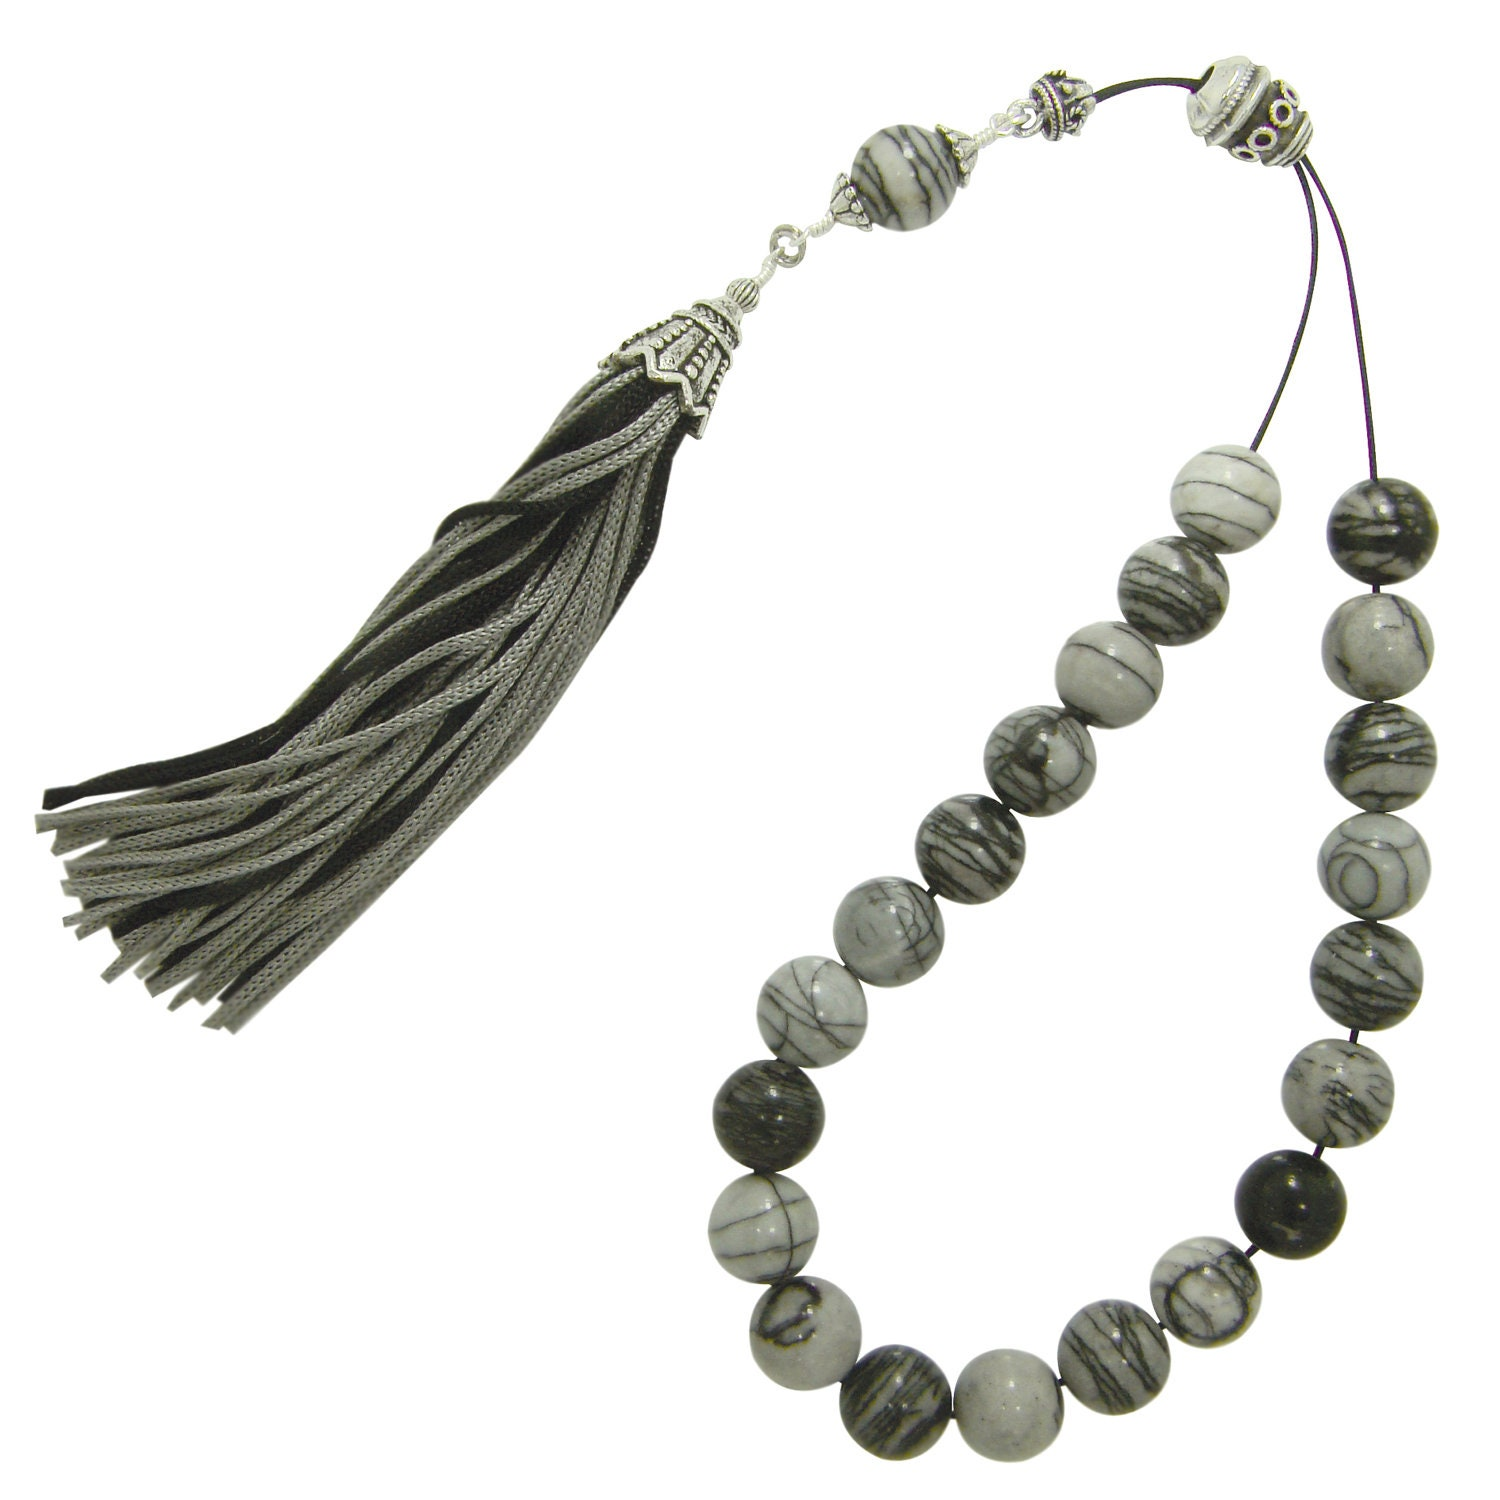 Greek Komboloi Worry Beads Rare Natural Jasper Beads with Original Shield Bead & Modern Tassel